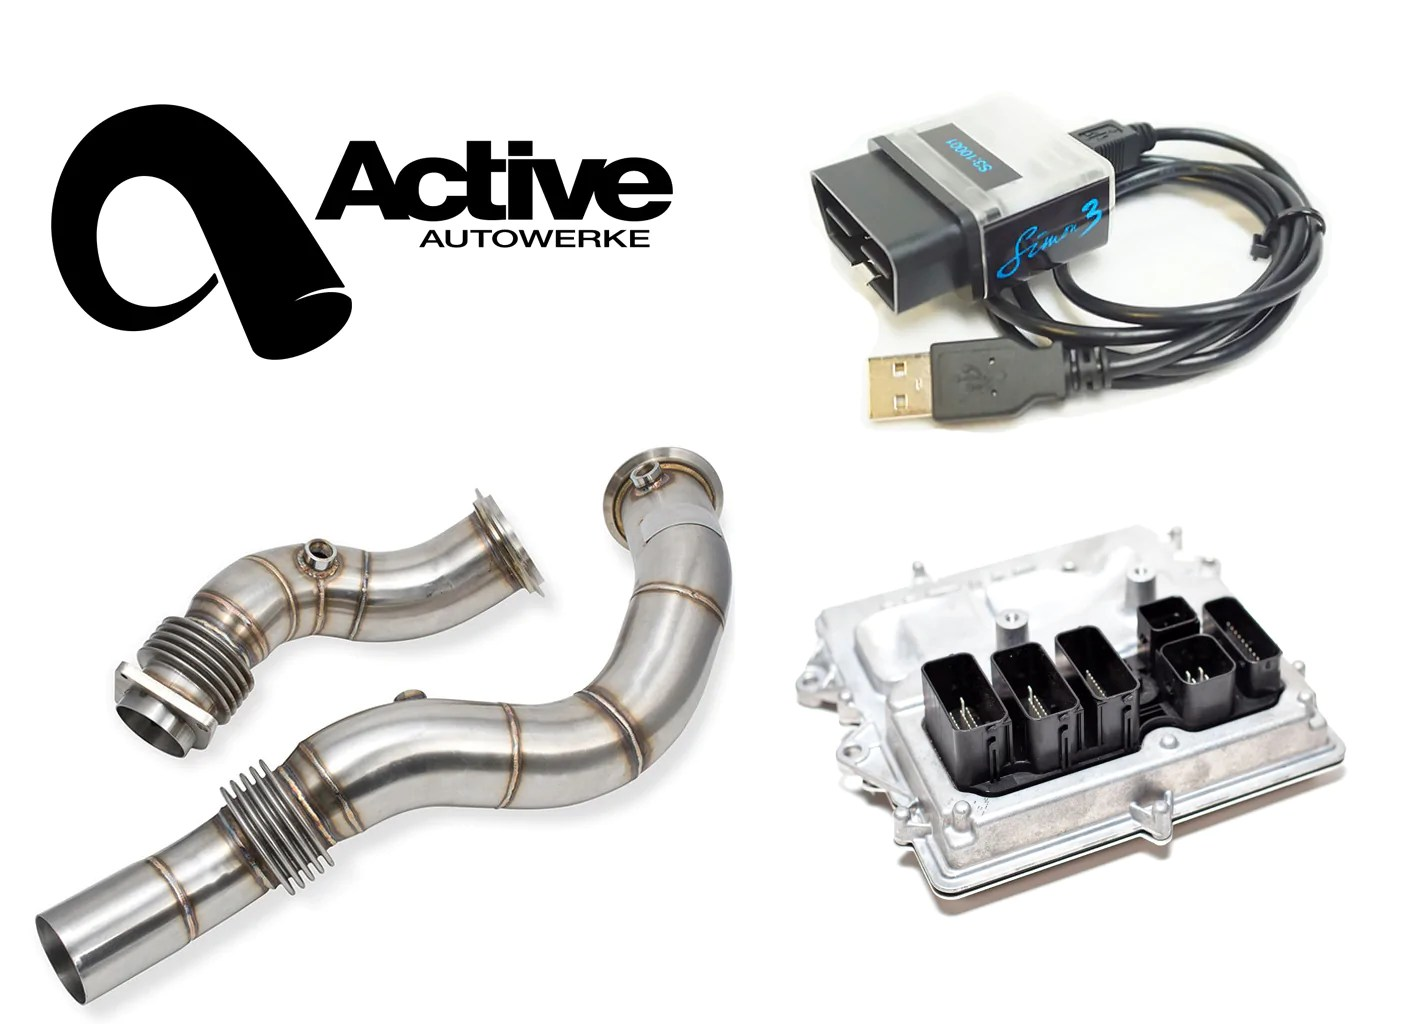 M4 Performance Exhaust Active Autowerke F8x M3 M4 Performance Package